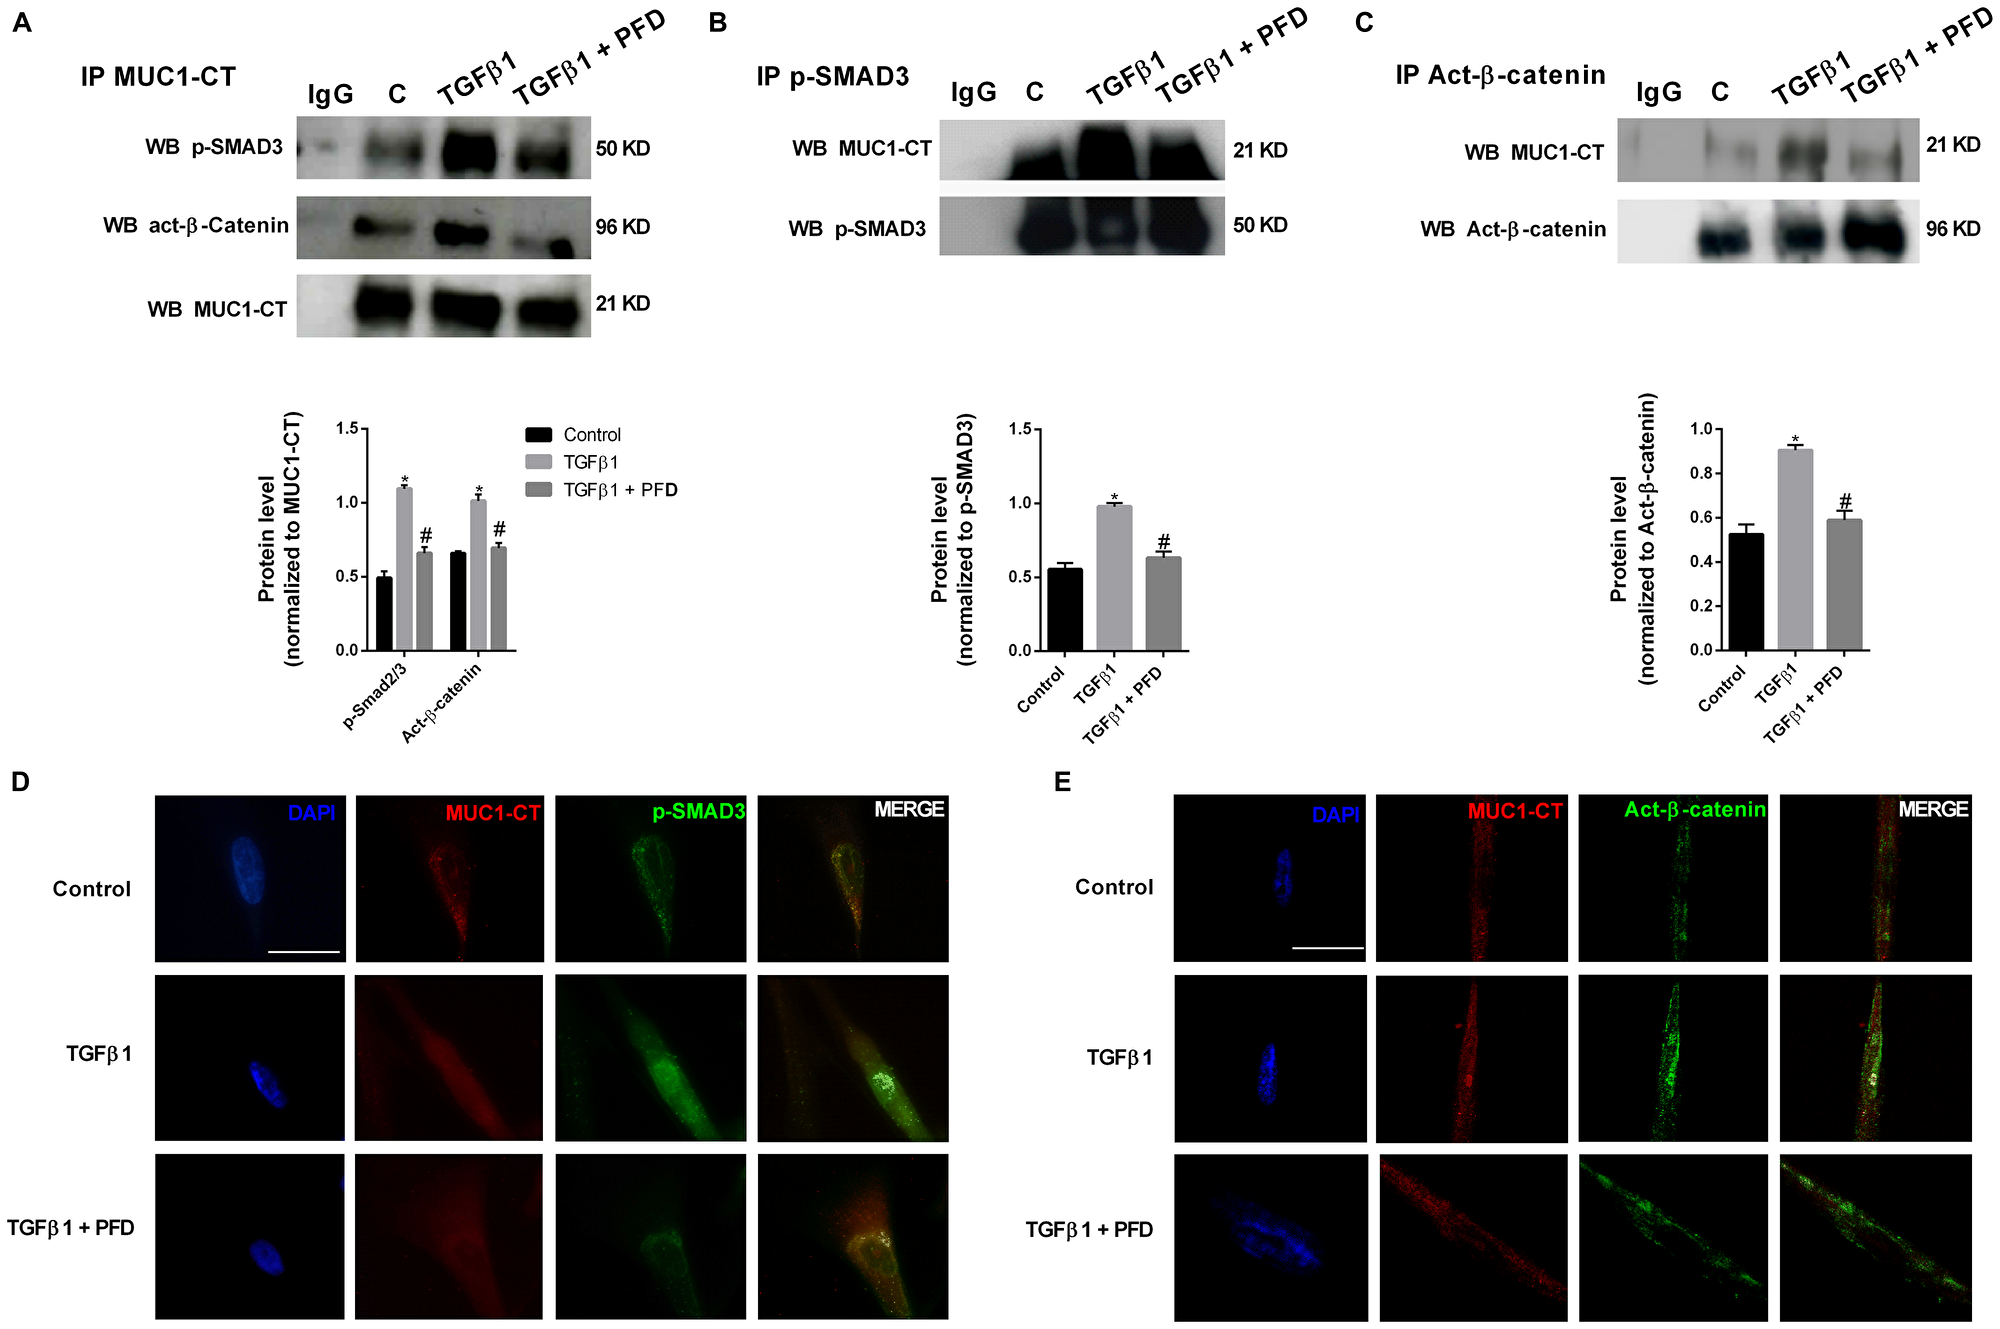 Pirfenidone (PFD) inhibits MUC1-CT co-localization with pSmad3 and active-β-catenin in the nuclei of lung fibroblasts stimulated with TGFβ1.